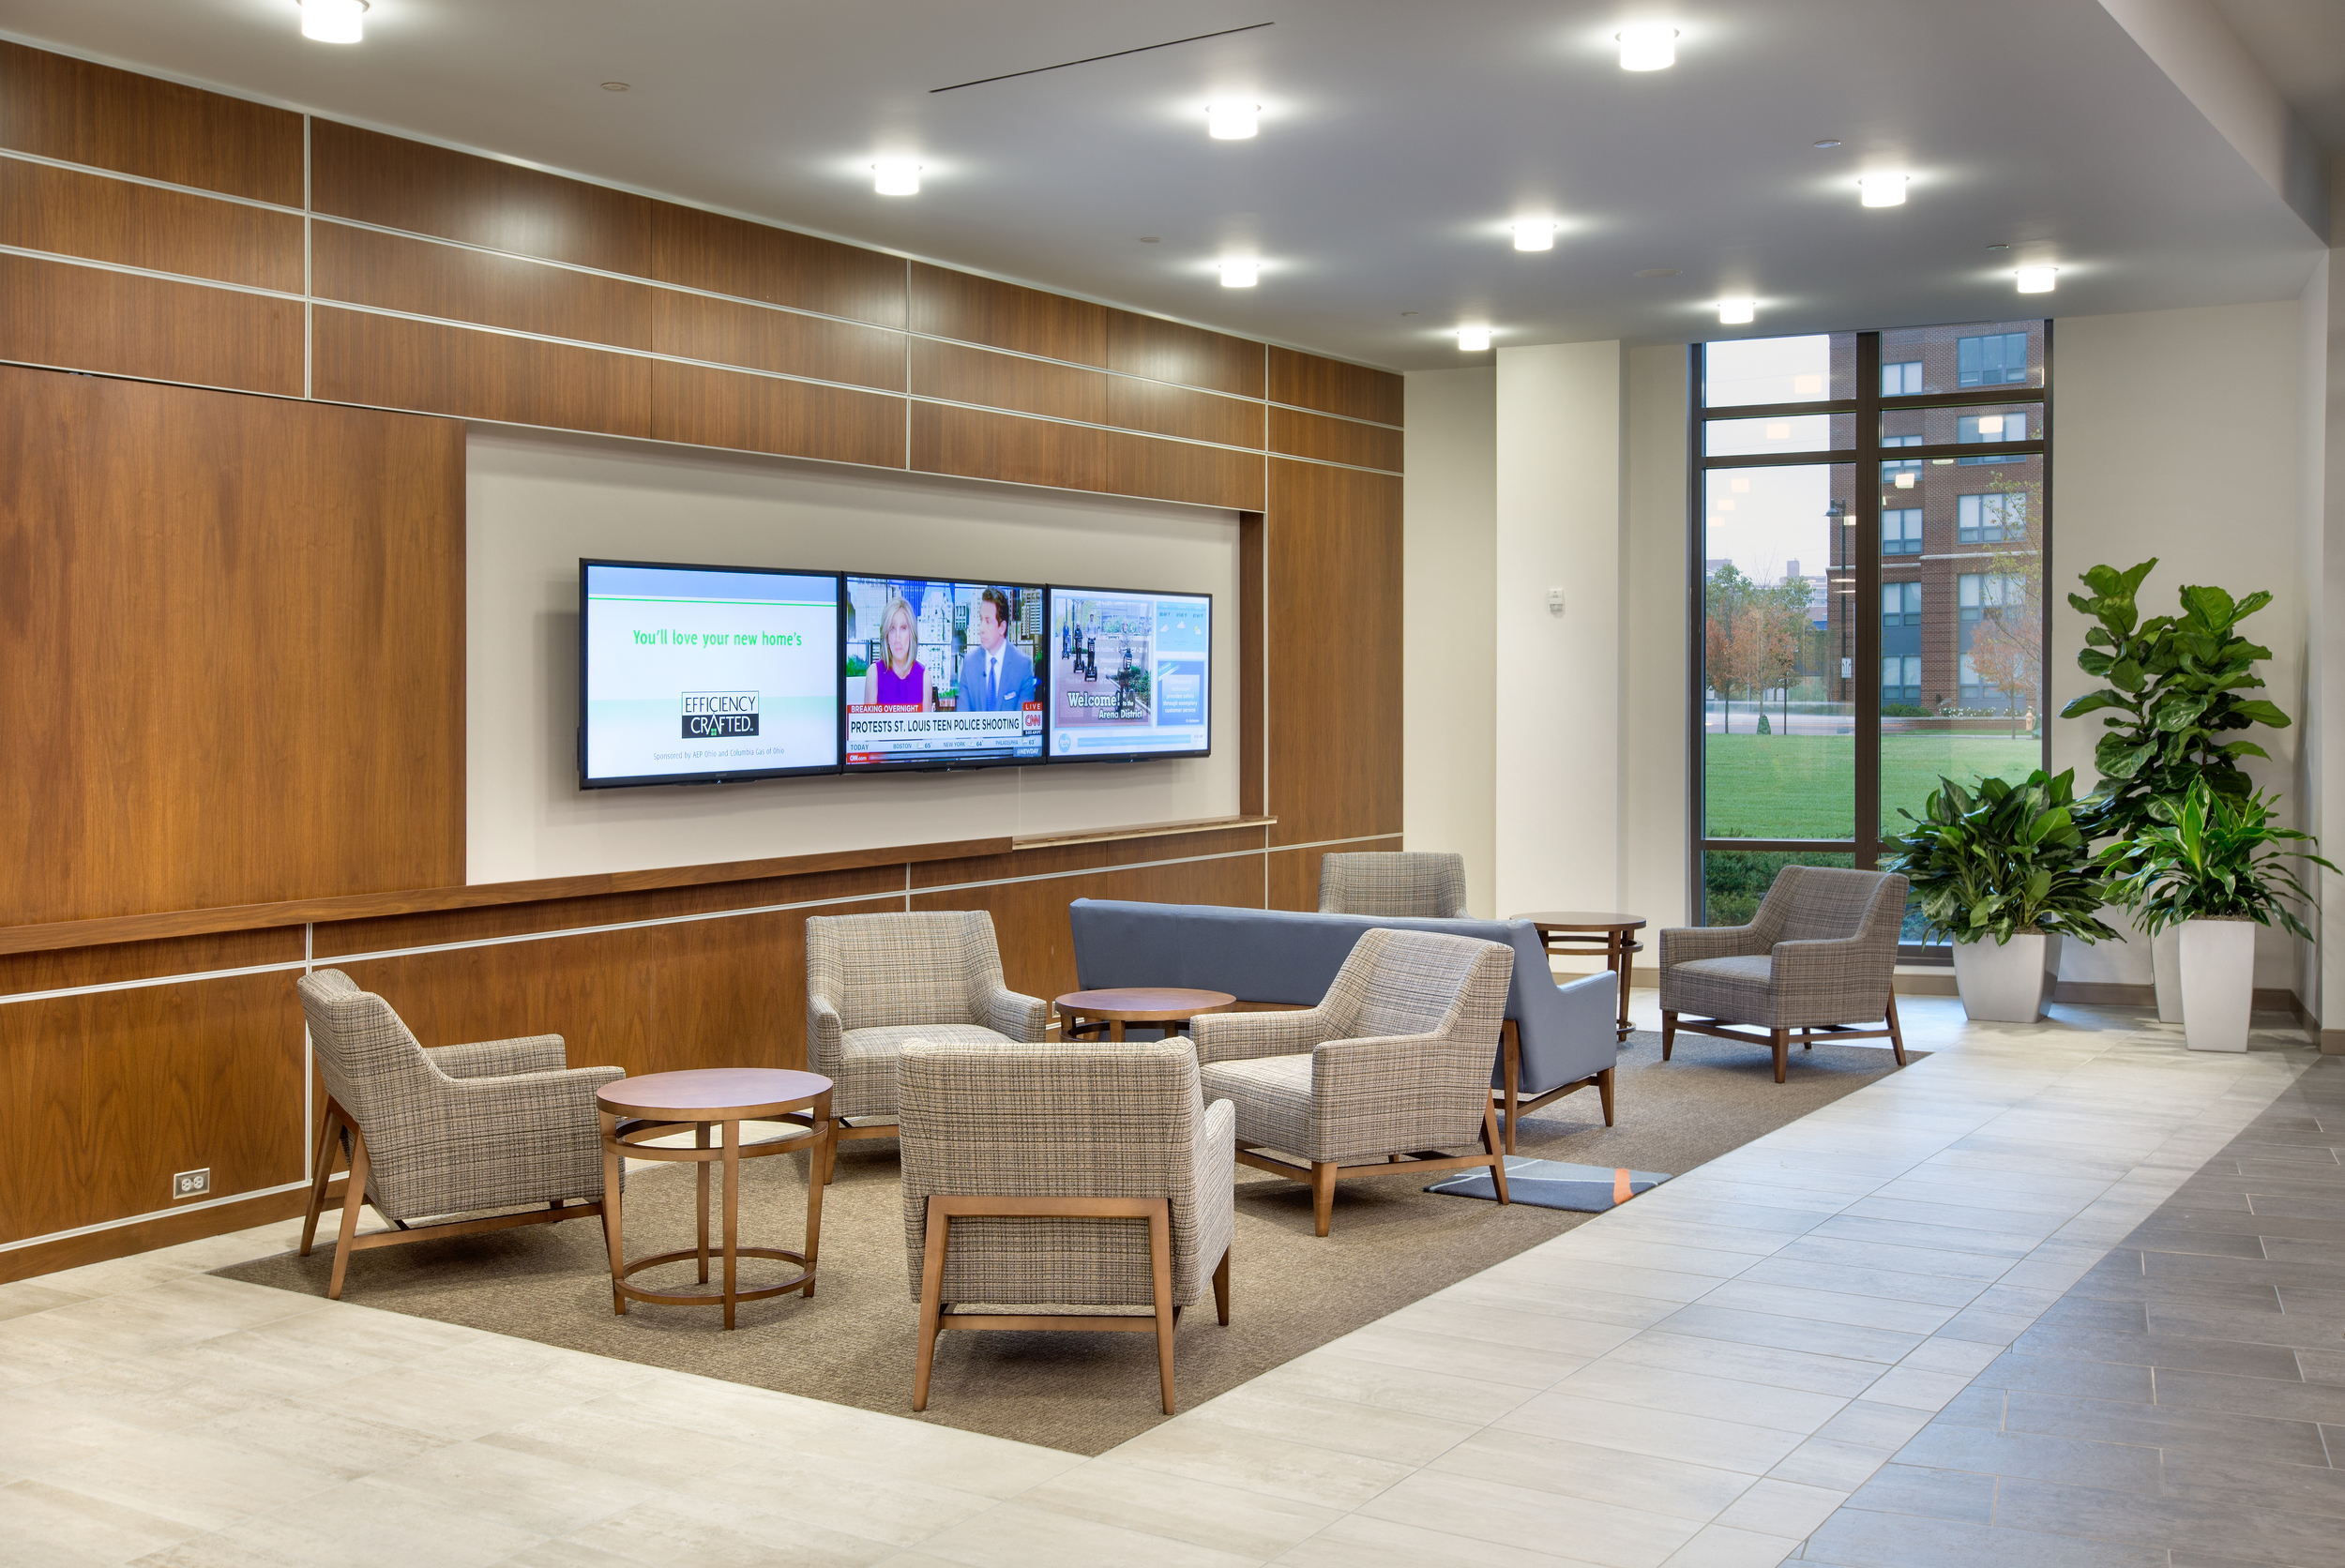 digital signage in lobby, NiSource